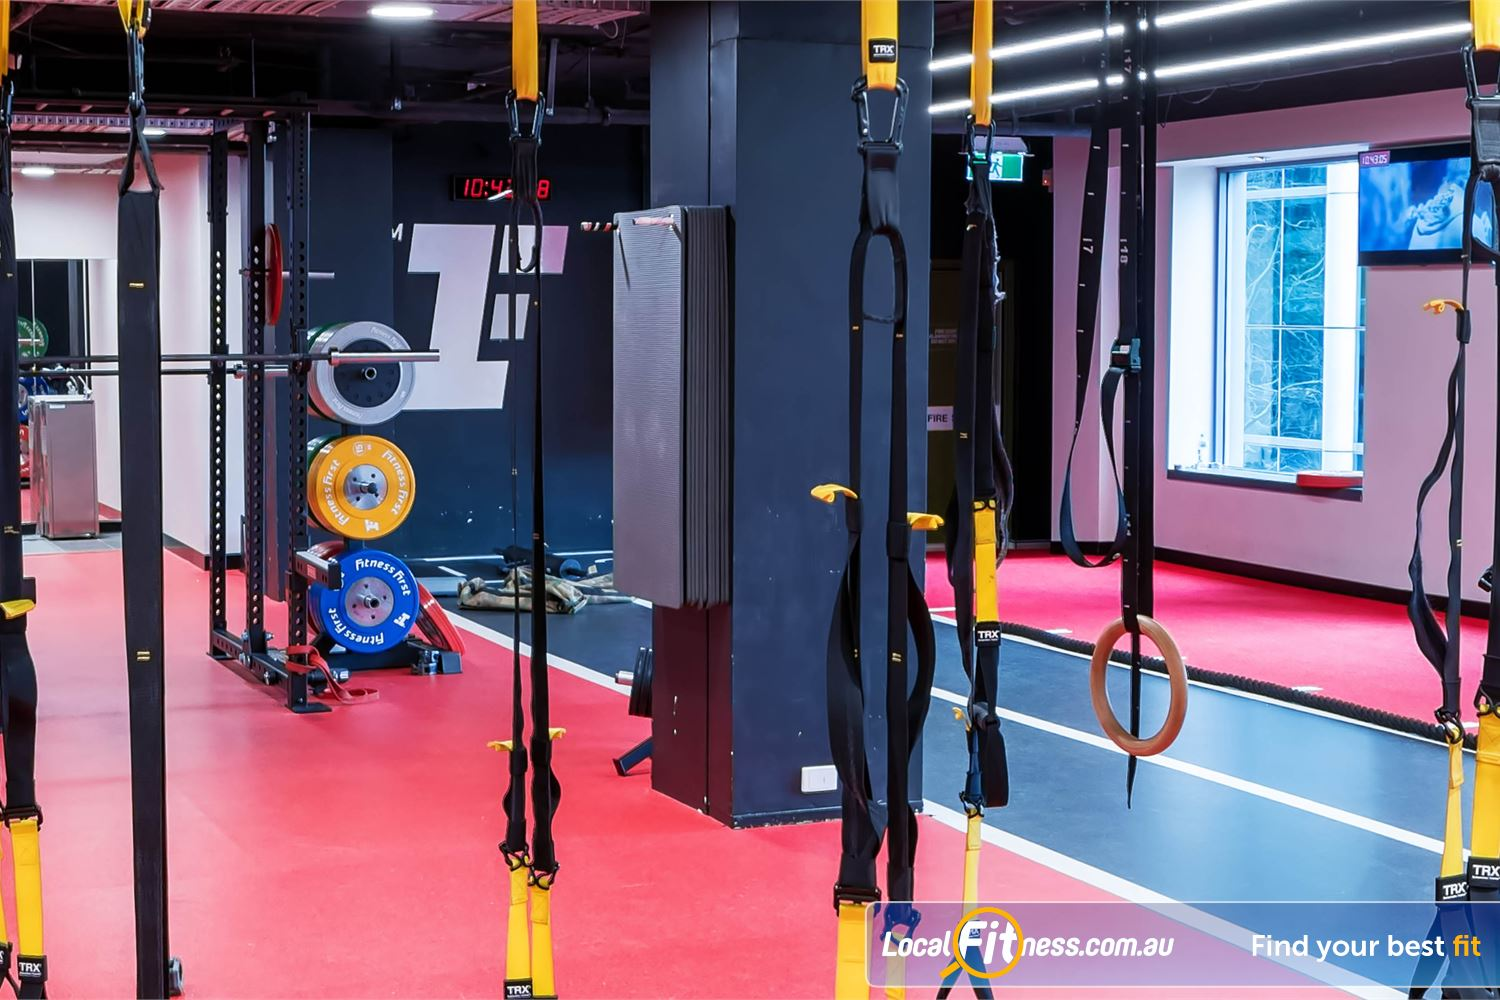 Fitness First Elizabeth Plaza Near Waverton Work your core and stability with TRX and gymnastic ring training.